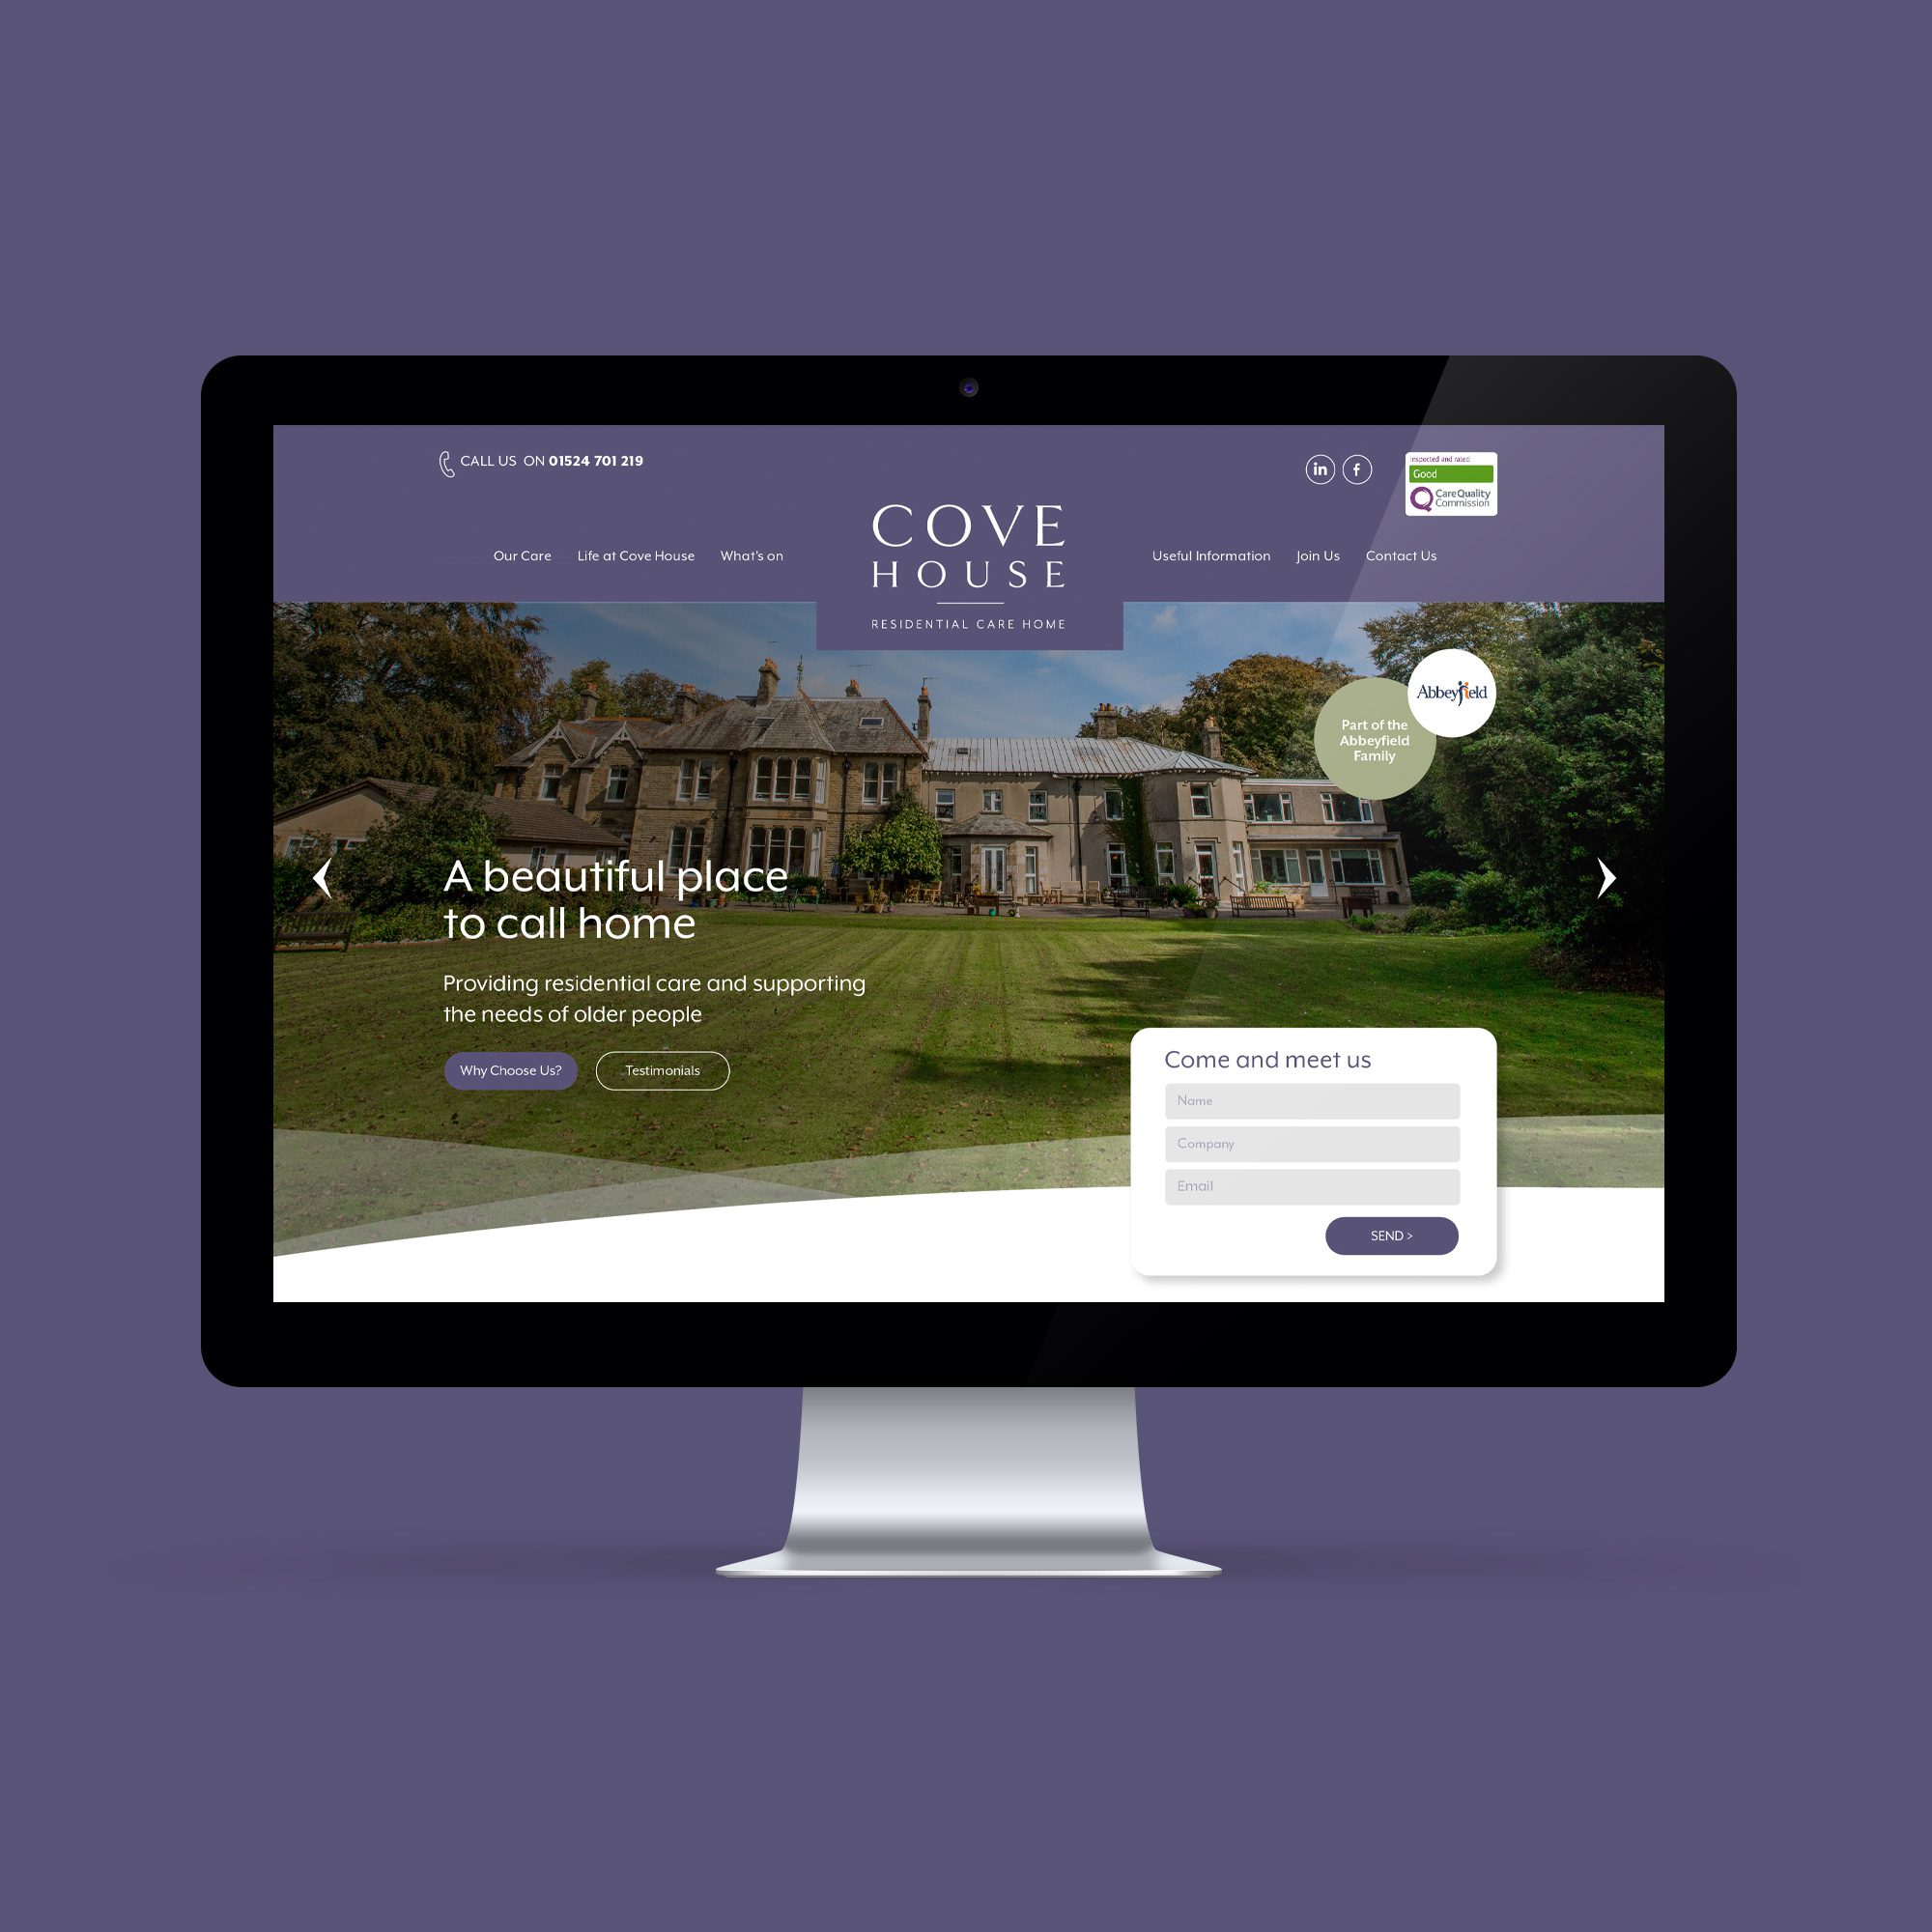 New brand identity and website design for Cove House residential home in Silverdale, Lancashire